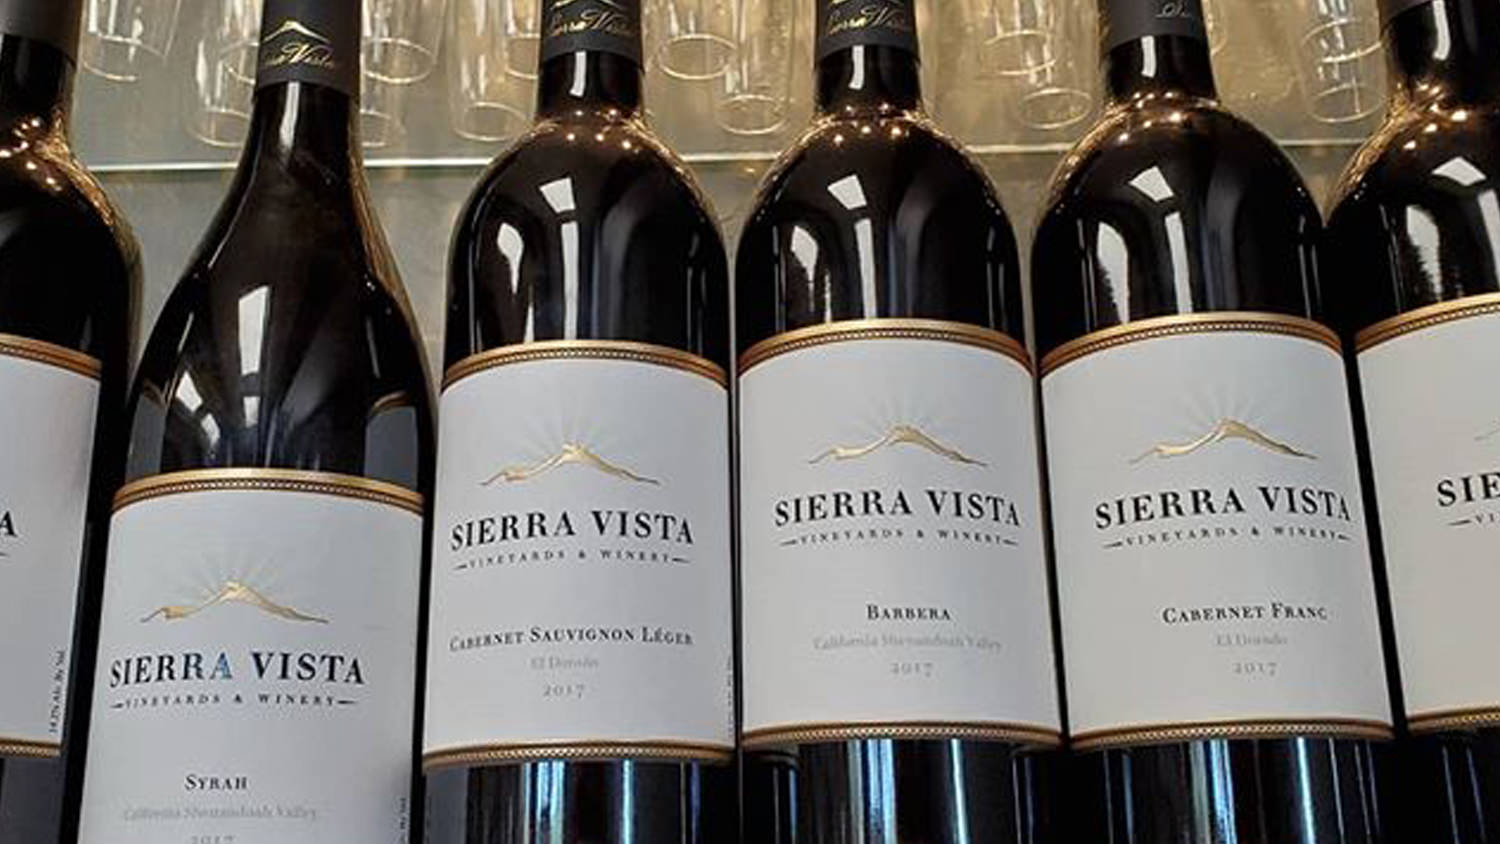 Sierra Vista Tasting Room Bottles of Wine